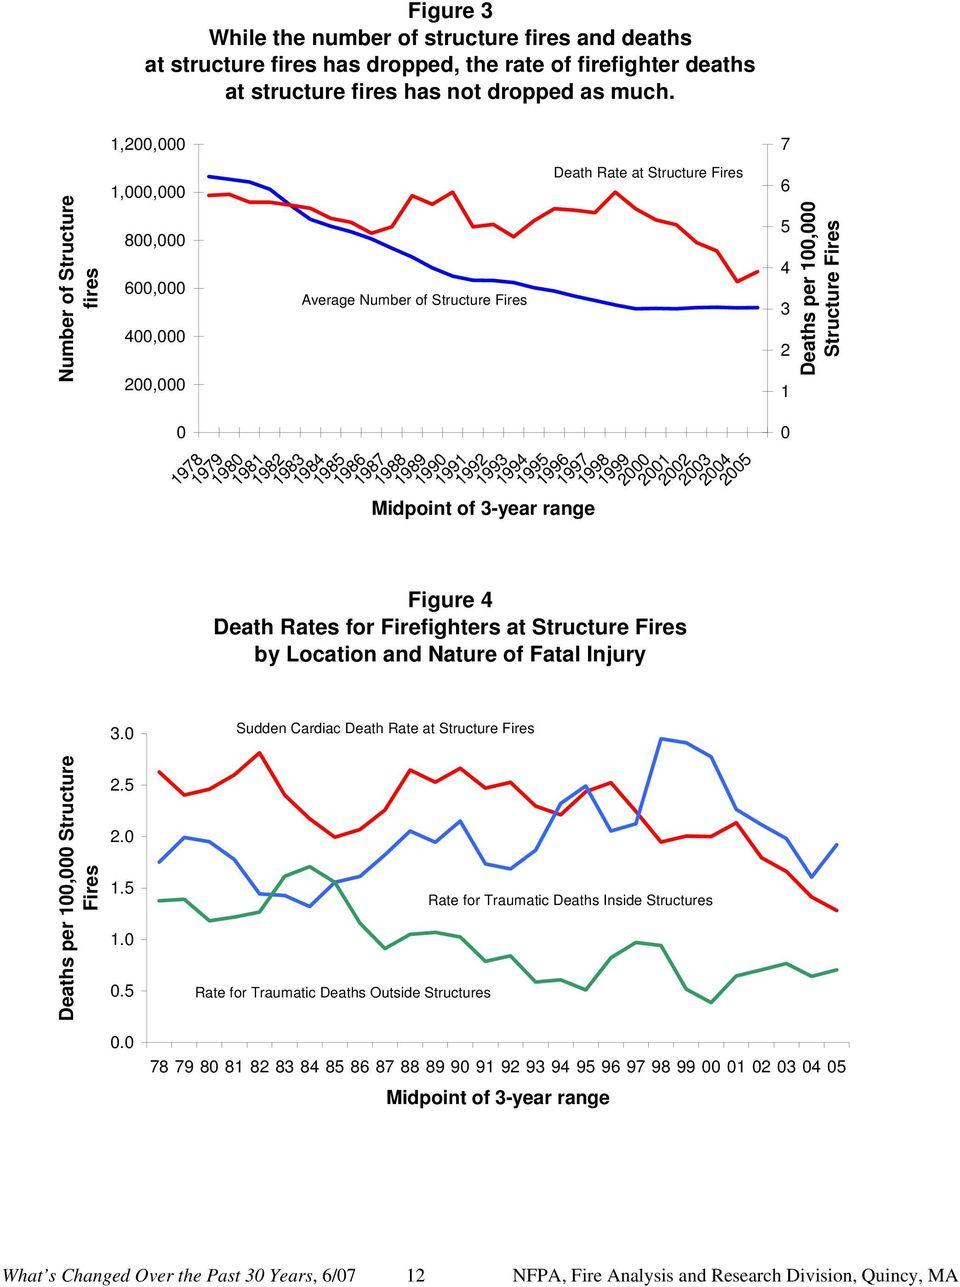 1991 1992 1993 1994 1995 1996 1997 1998 1999 2 21 22 Figure 4 Death Rates for Firefighters at Structure Fires by Location and Nature of Fatal Injury 23 24 25 7 6 5 4 3 2 1 Deaths per 1, Structure